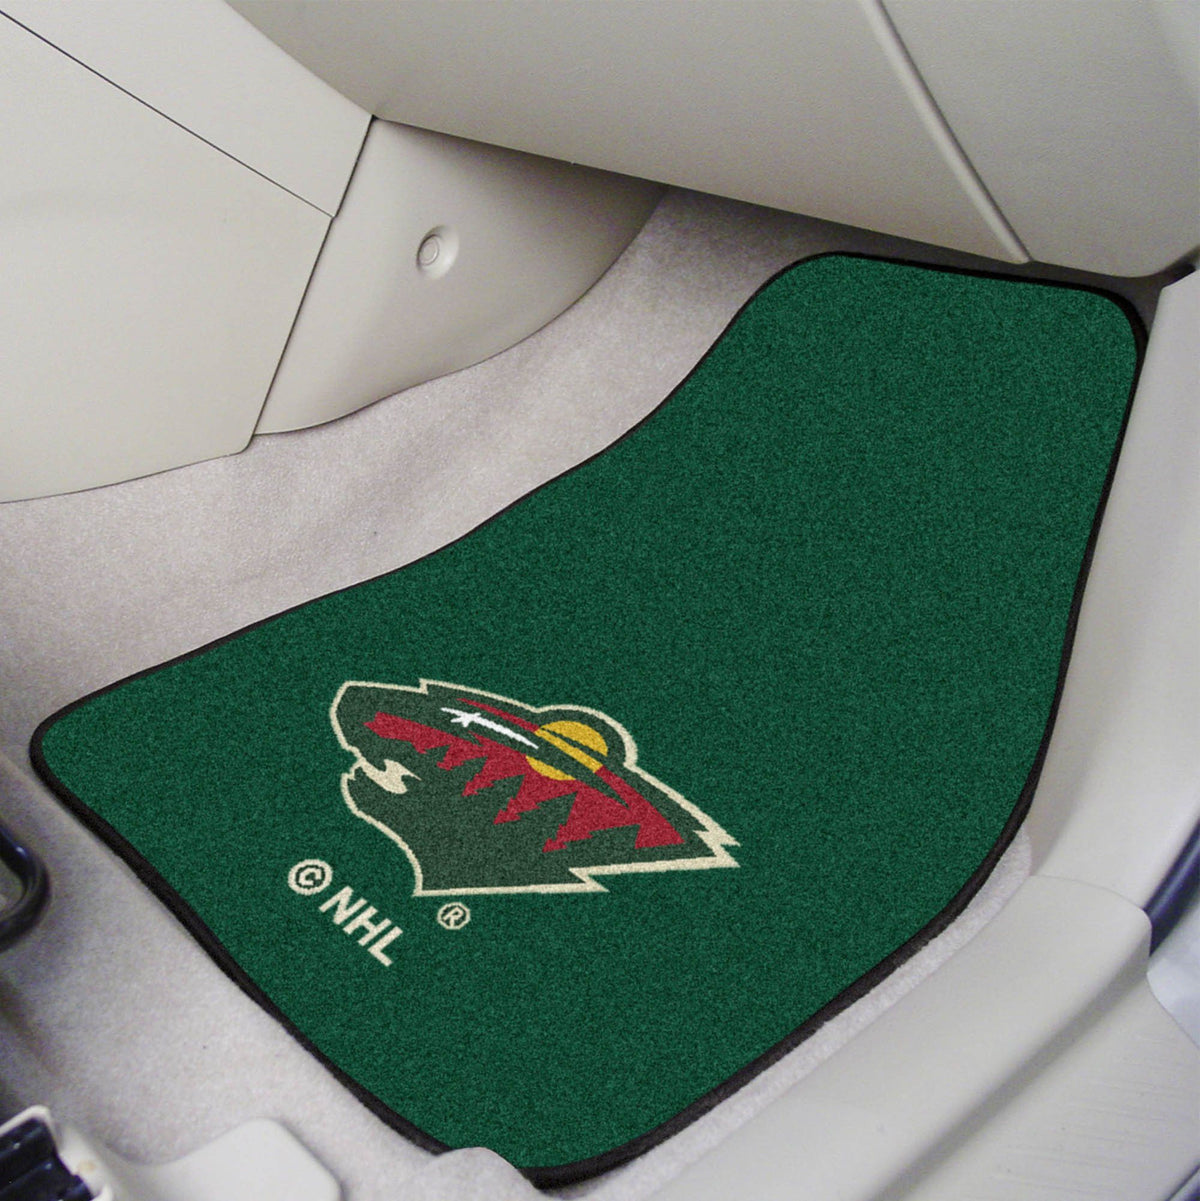 NHL - Carpet Car Mat, 2-Piece Set NHL Mats, Front Car Mats, 2-pc Carpet Car Mat Set, NHL, Auto Fan Mats Minnesota Wild